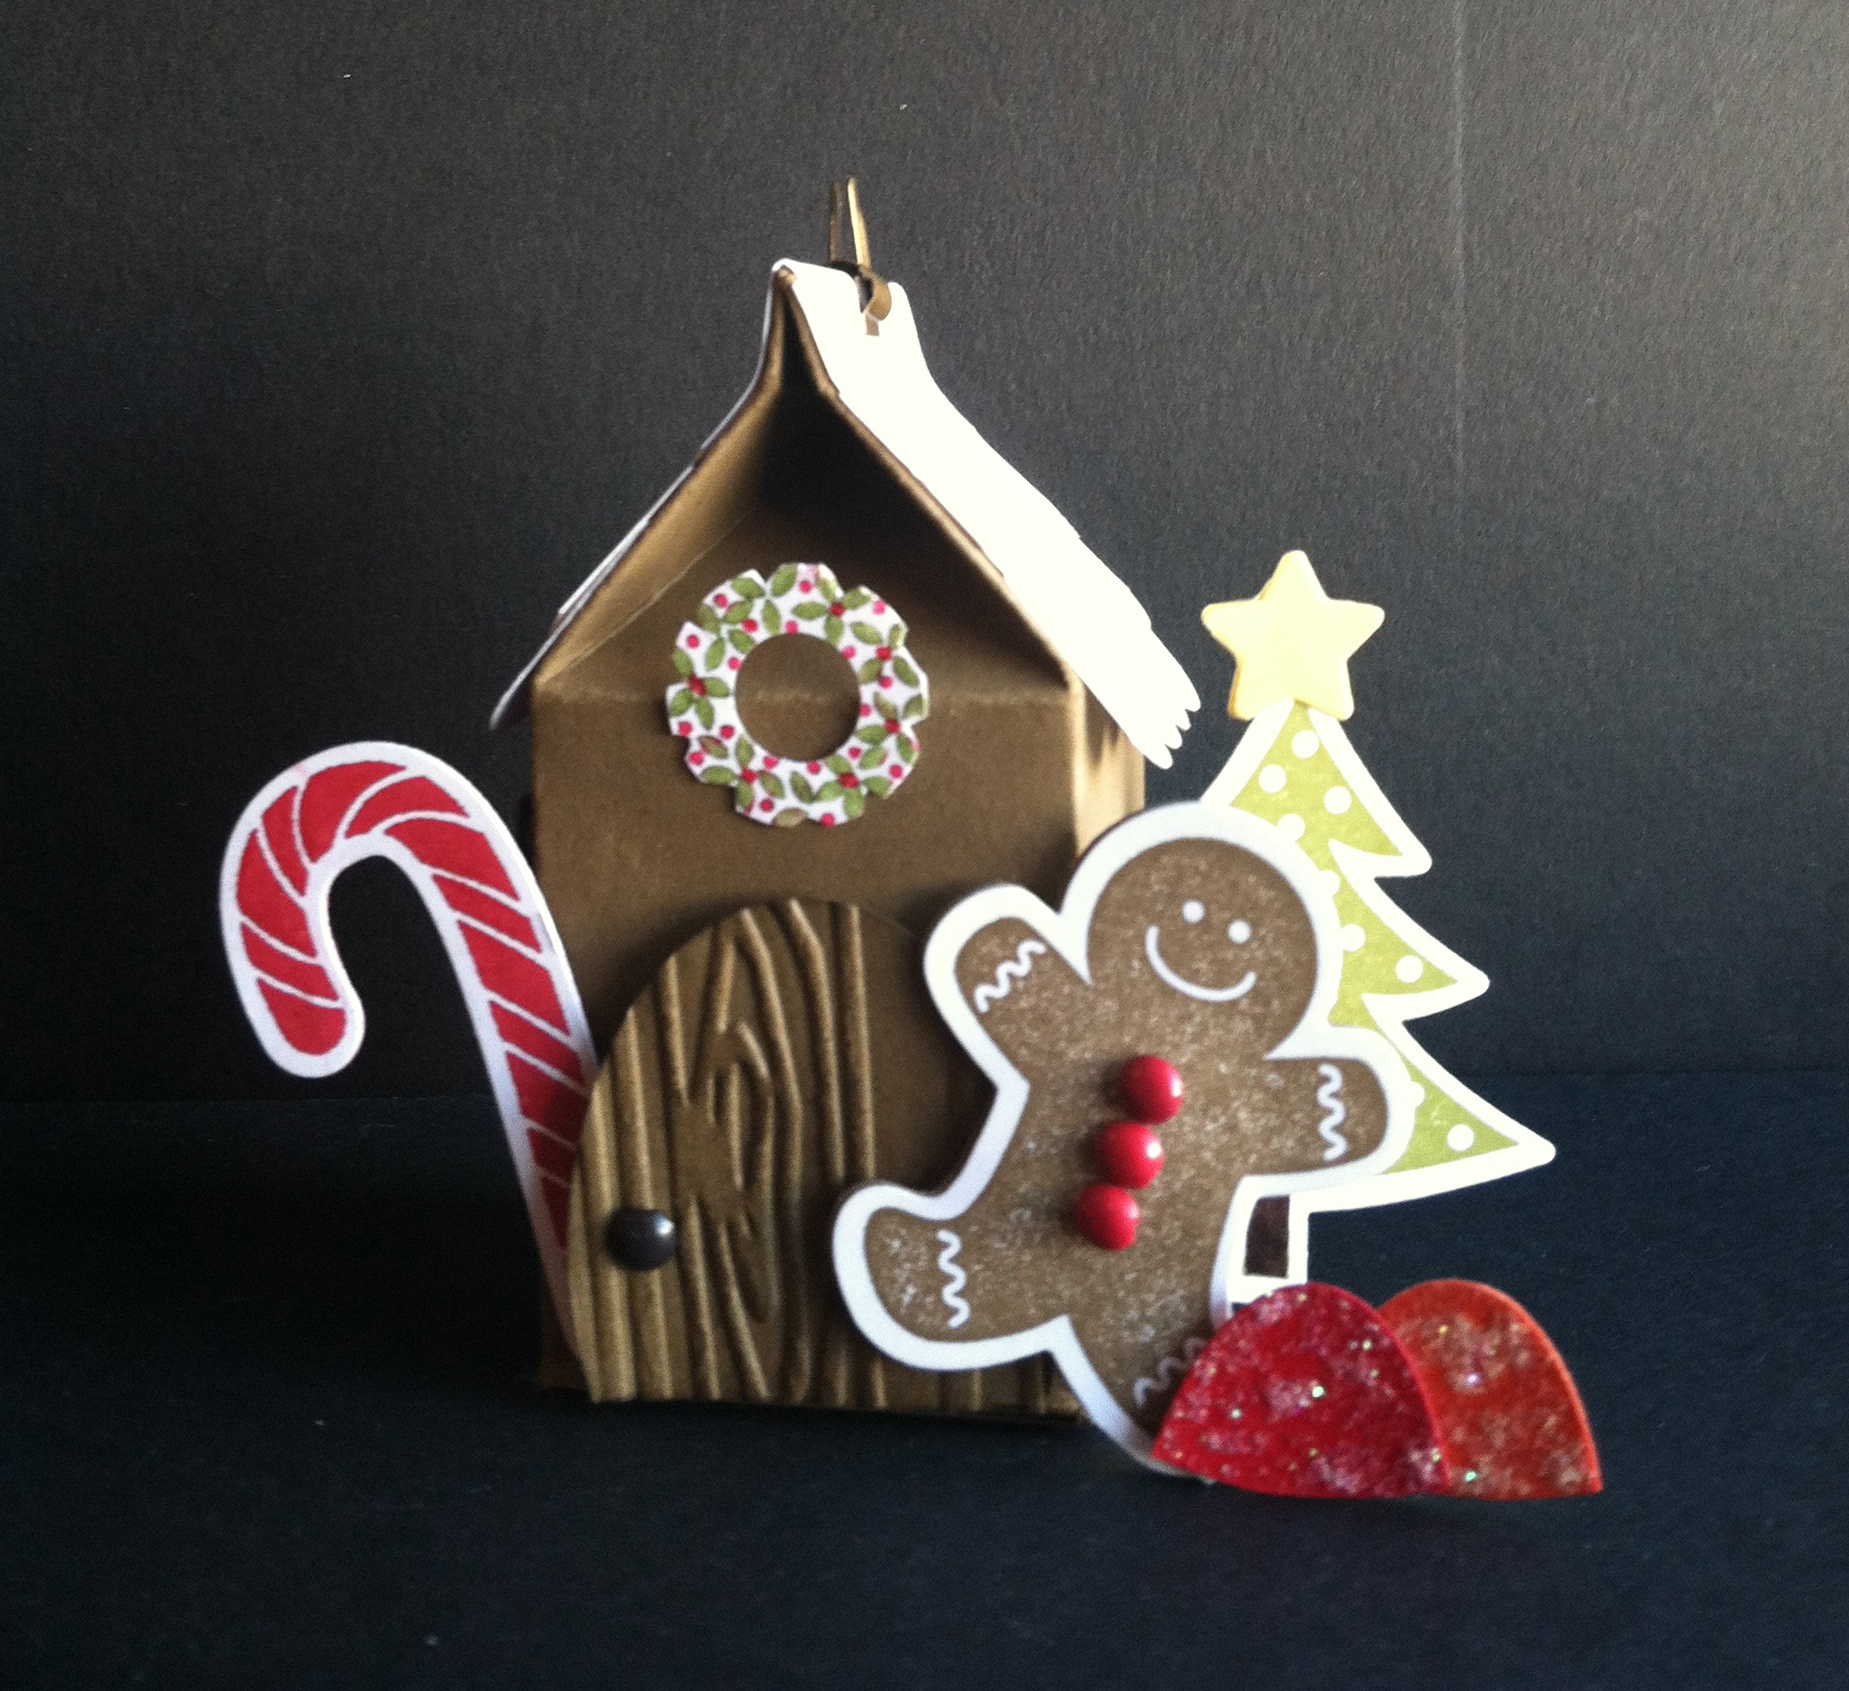 Scentsational Season, Gingerbread House CASE'd with permission from Lorri Heiling